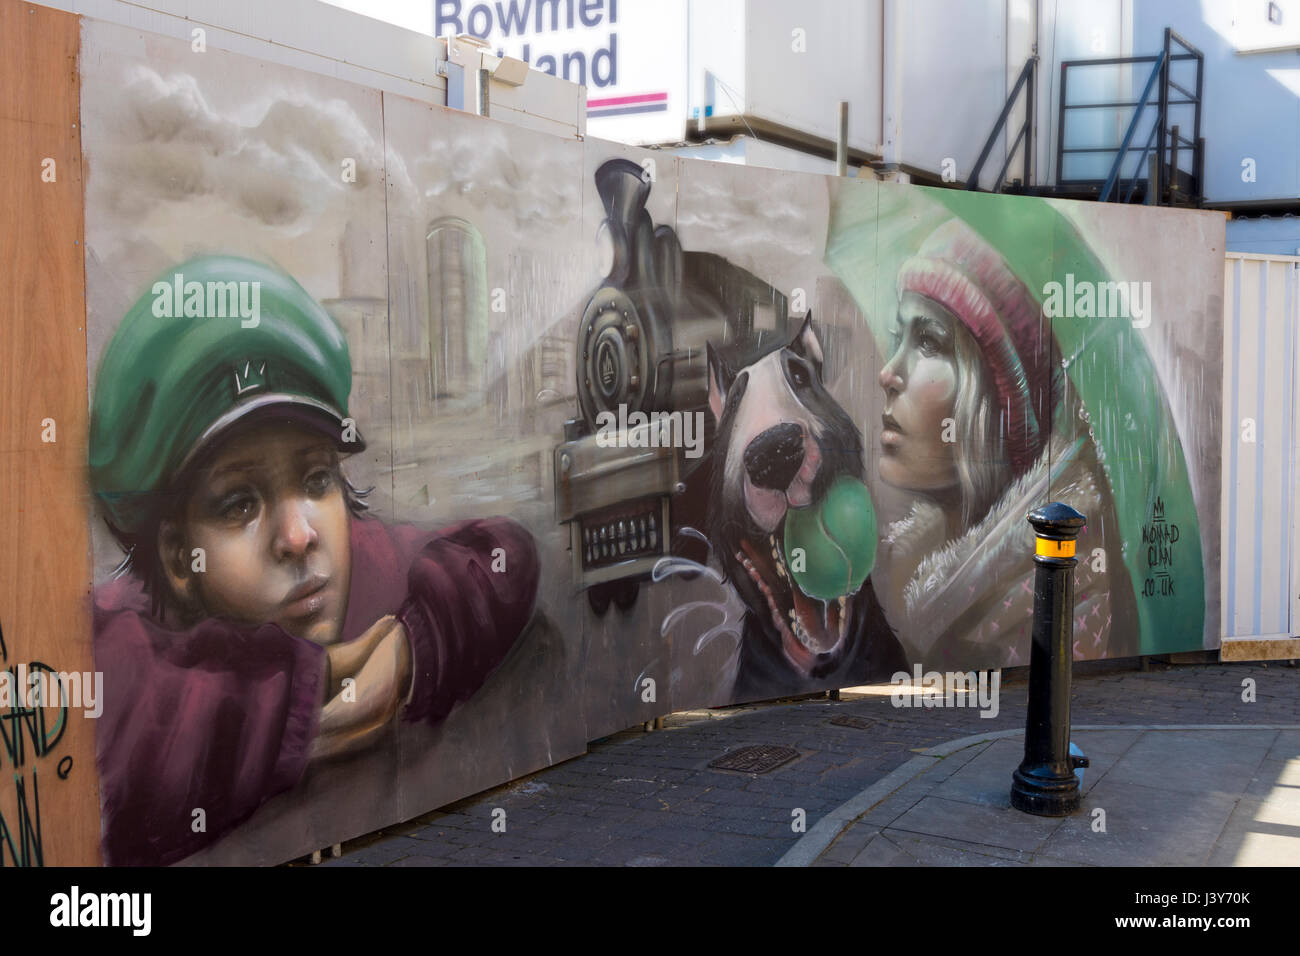 Wall mural by Nomad Clan on hoardings at the Hotel Indigo building site, Corporation Street, Manchester, England, - Stock Image